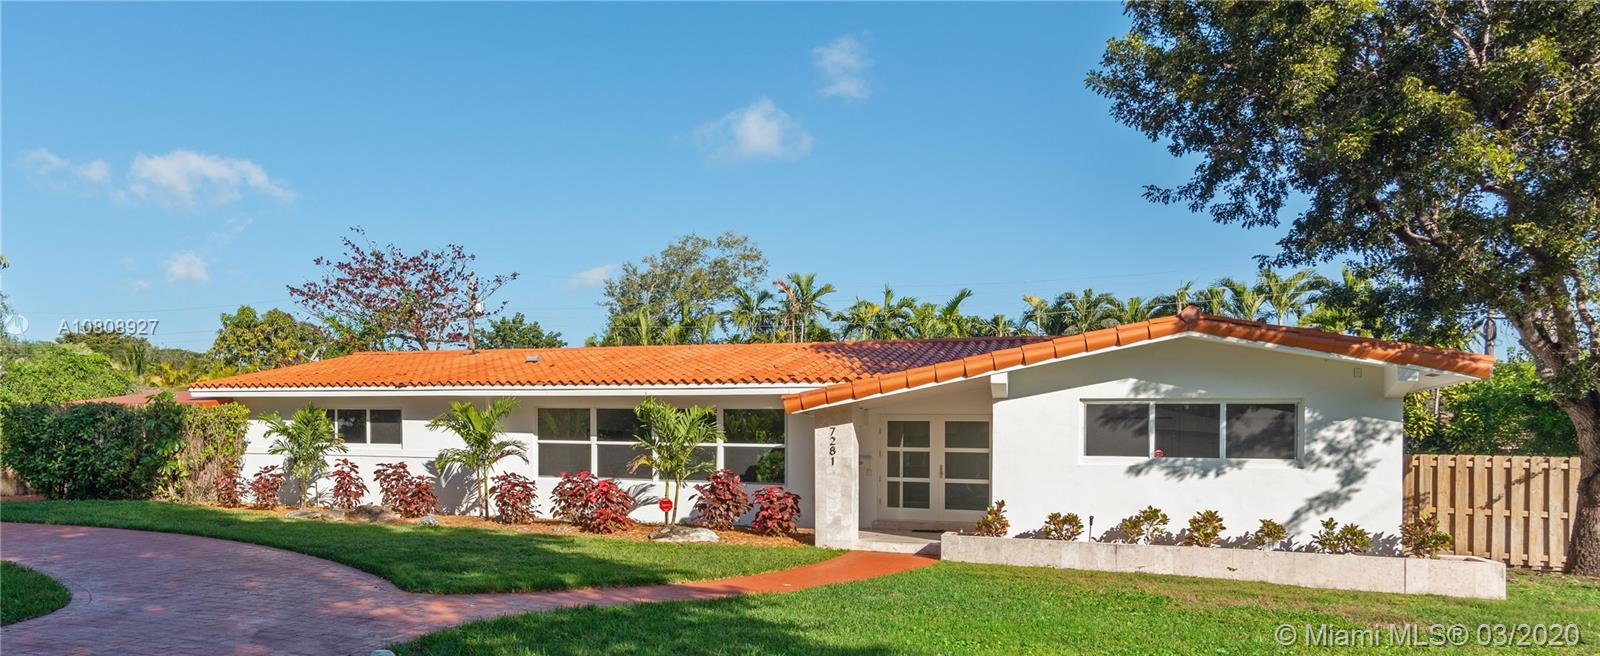 7281 SW 135 Terrace  For Sale A10808927, FL